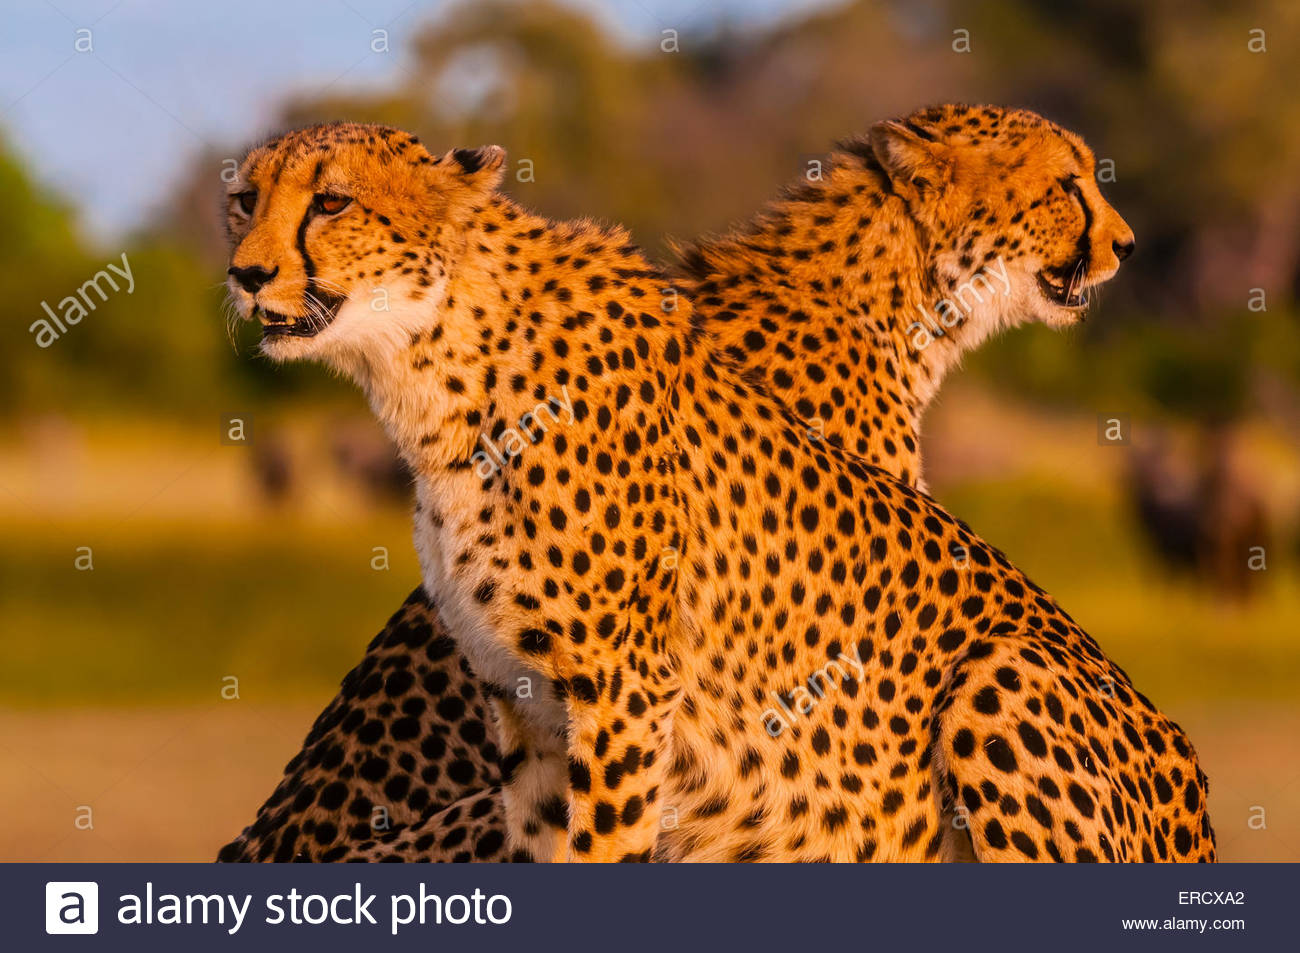 Two cheetahs on a mound, near Kwara Camp, Okavango Delta, Botswana. - Stock Image